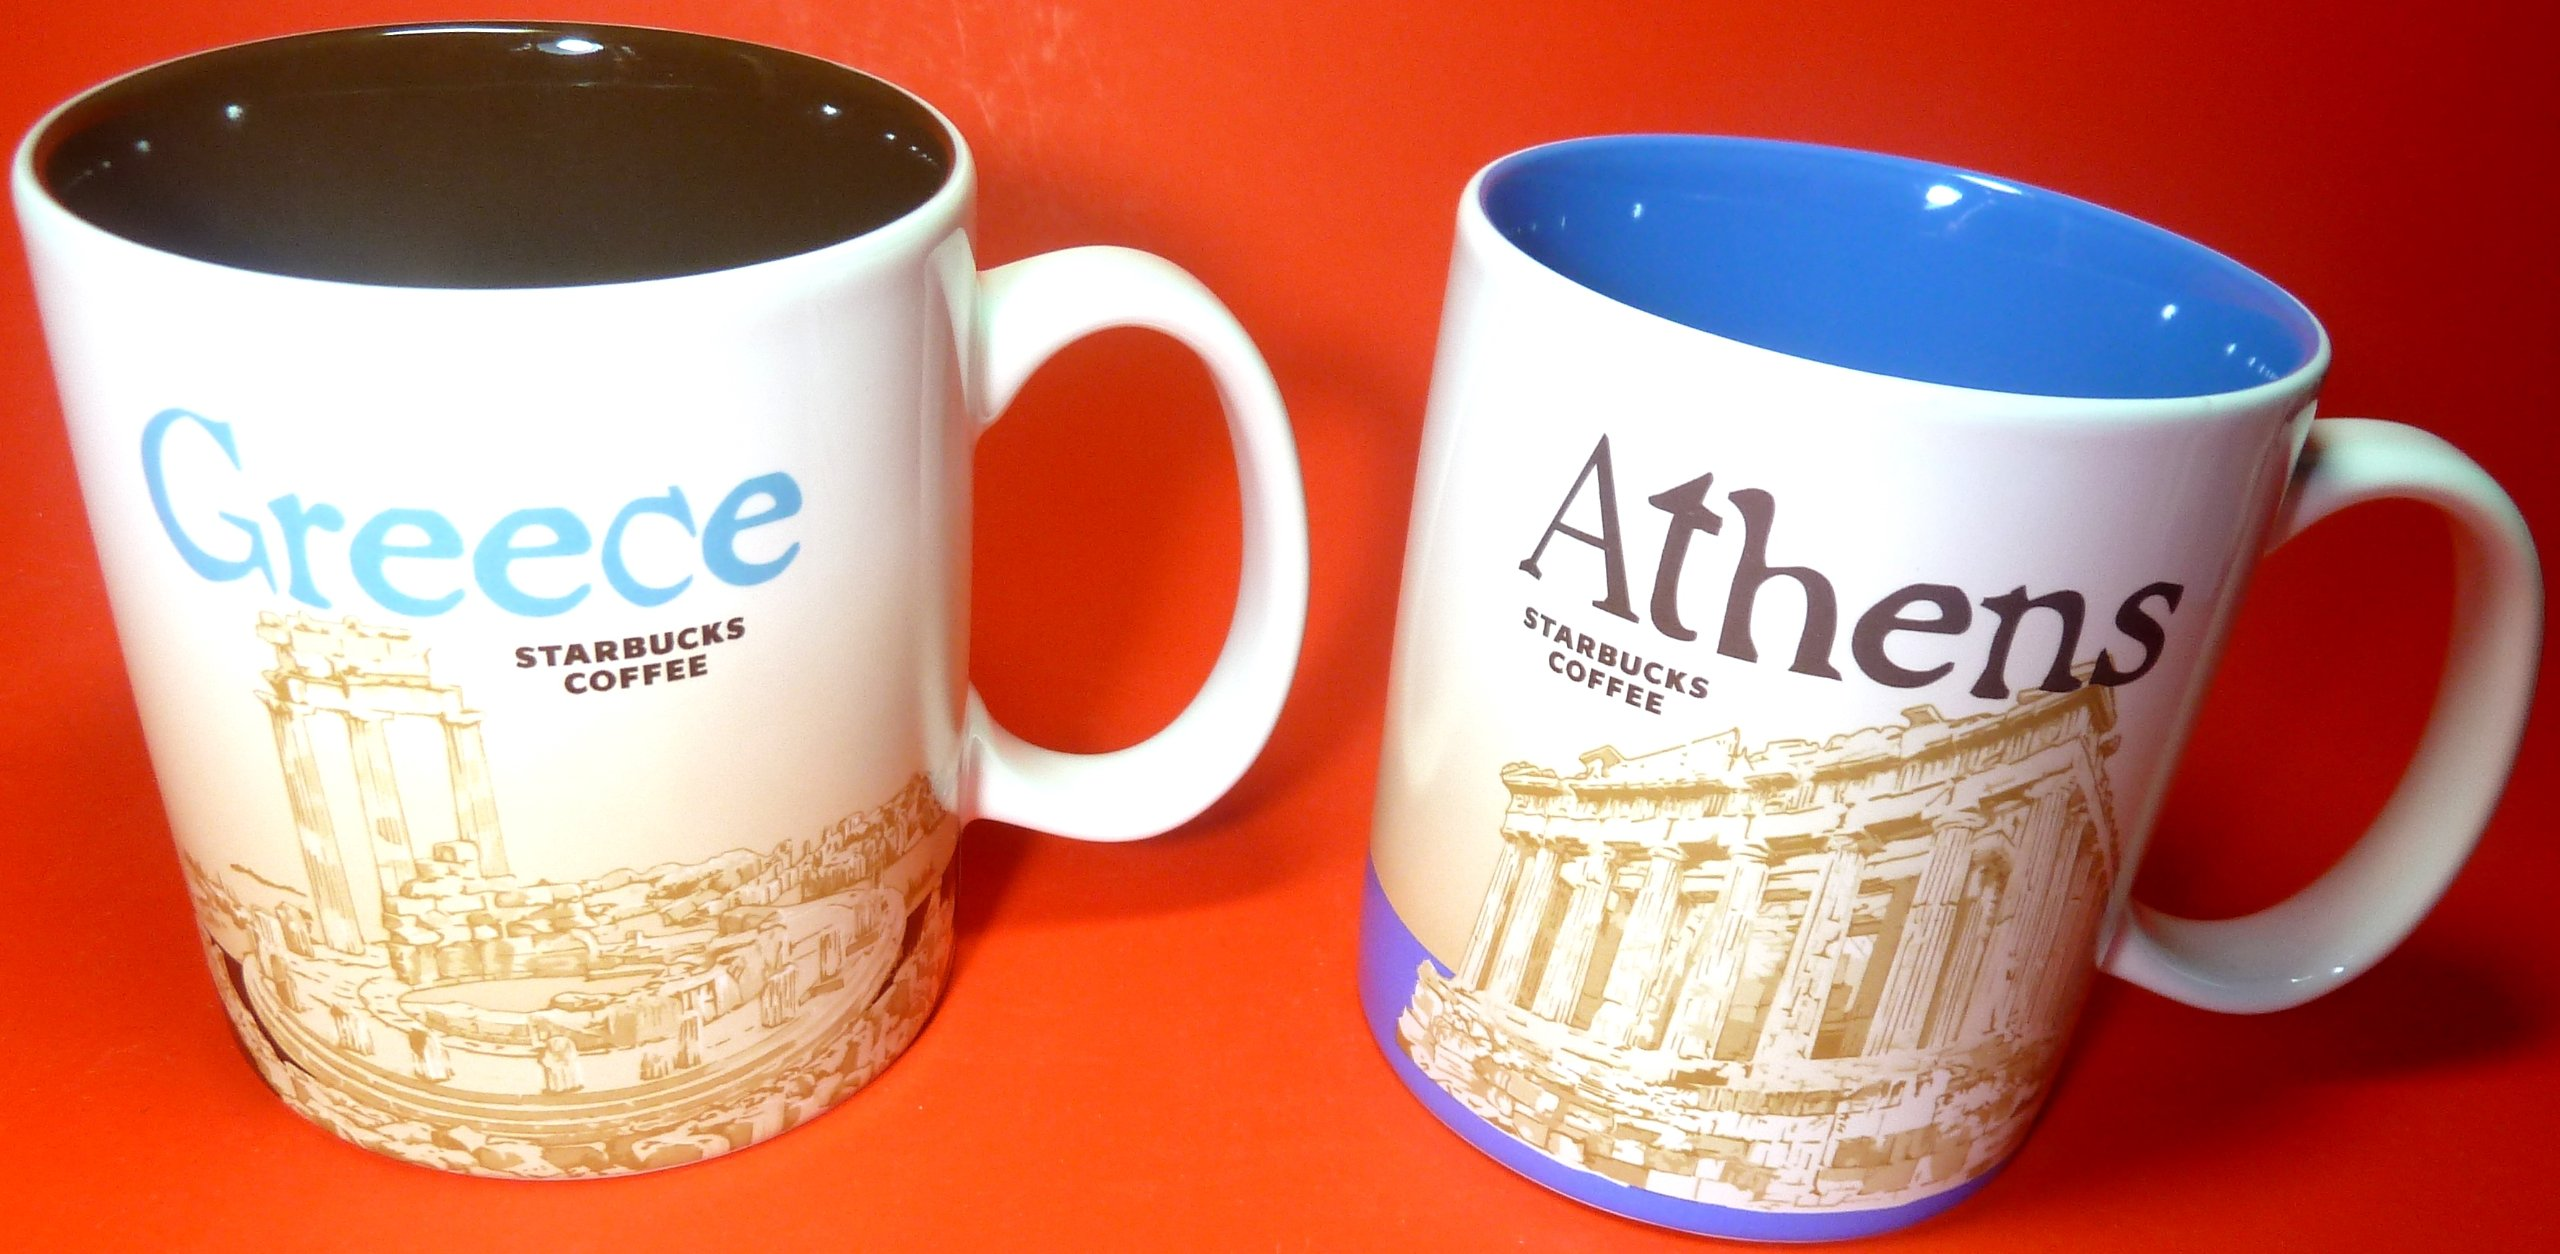 Starbucks 2 Global City Mugs 2013 - Greece , Athens , Brand New, 16 FL OZ/473 ML, Original, Collectibles, Coffee Mugs For Country & Capital